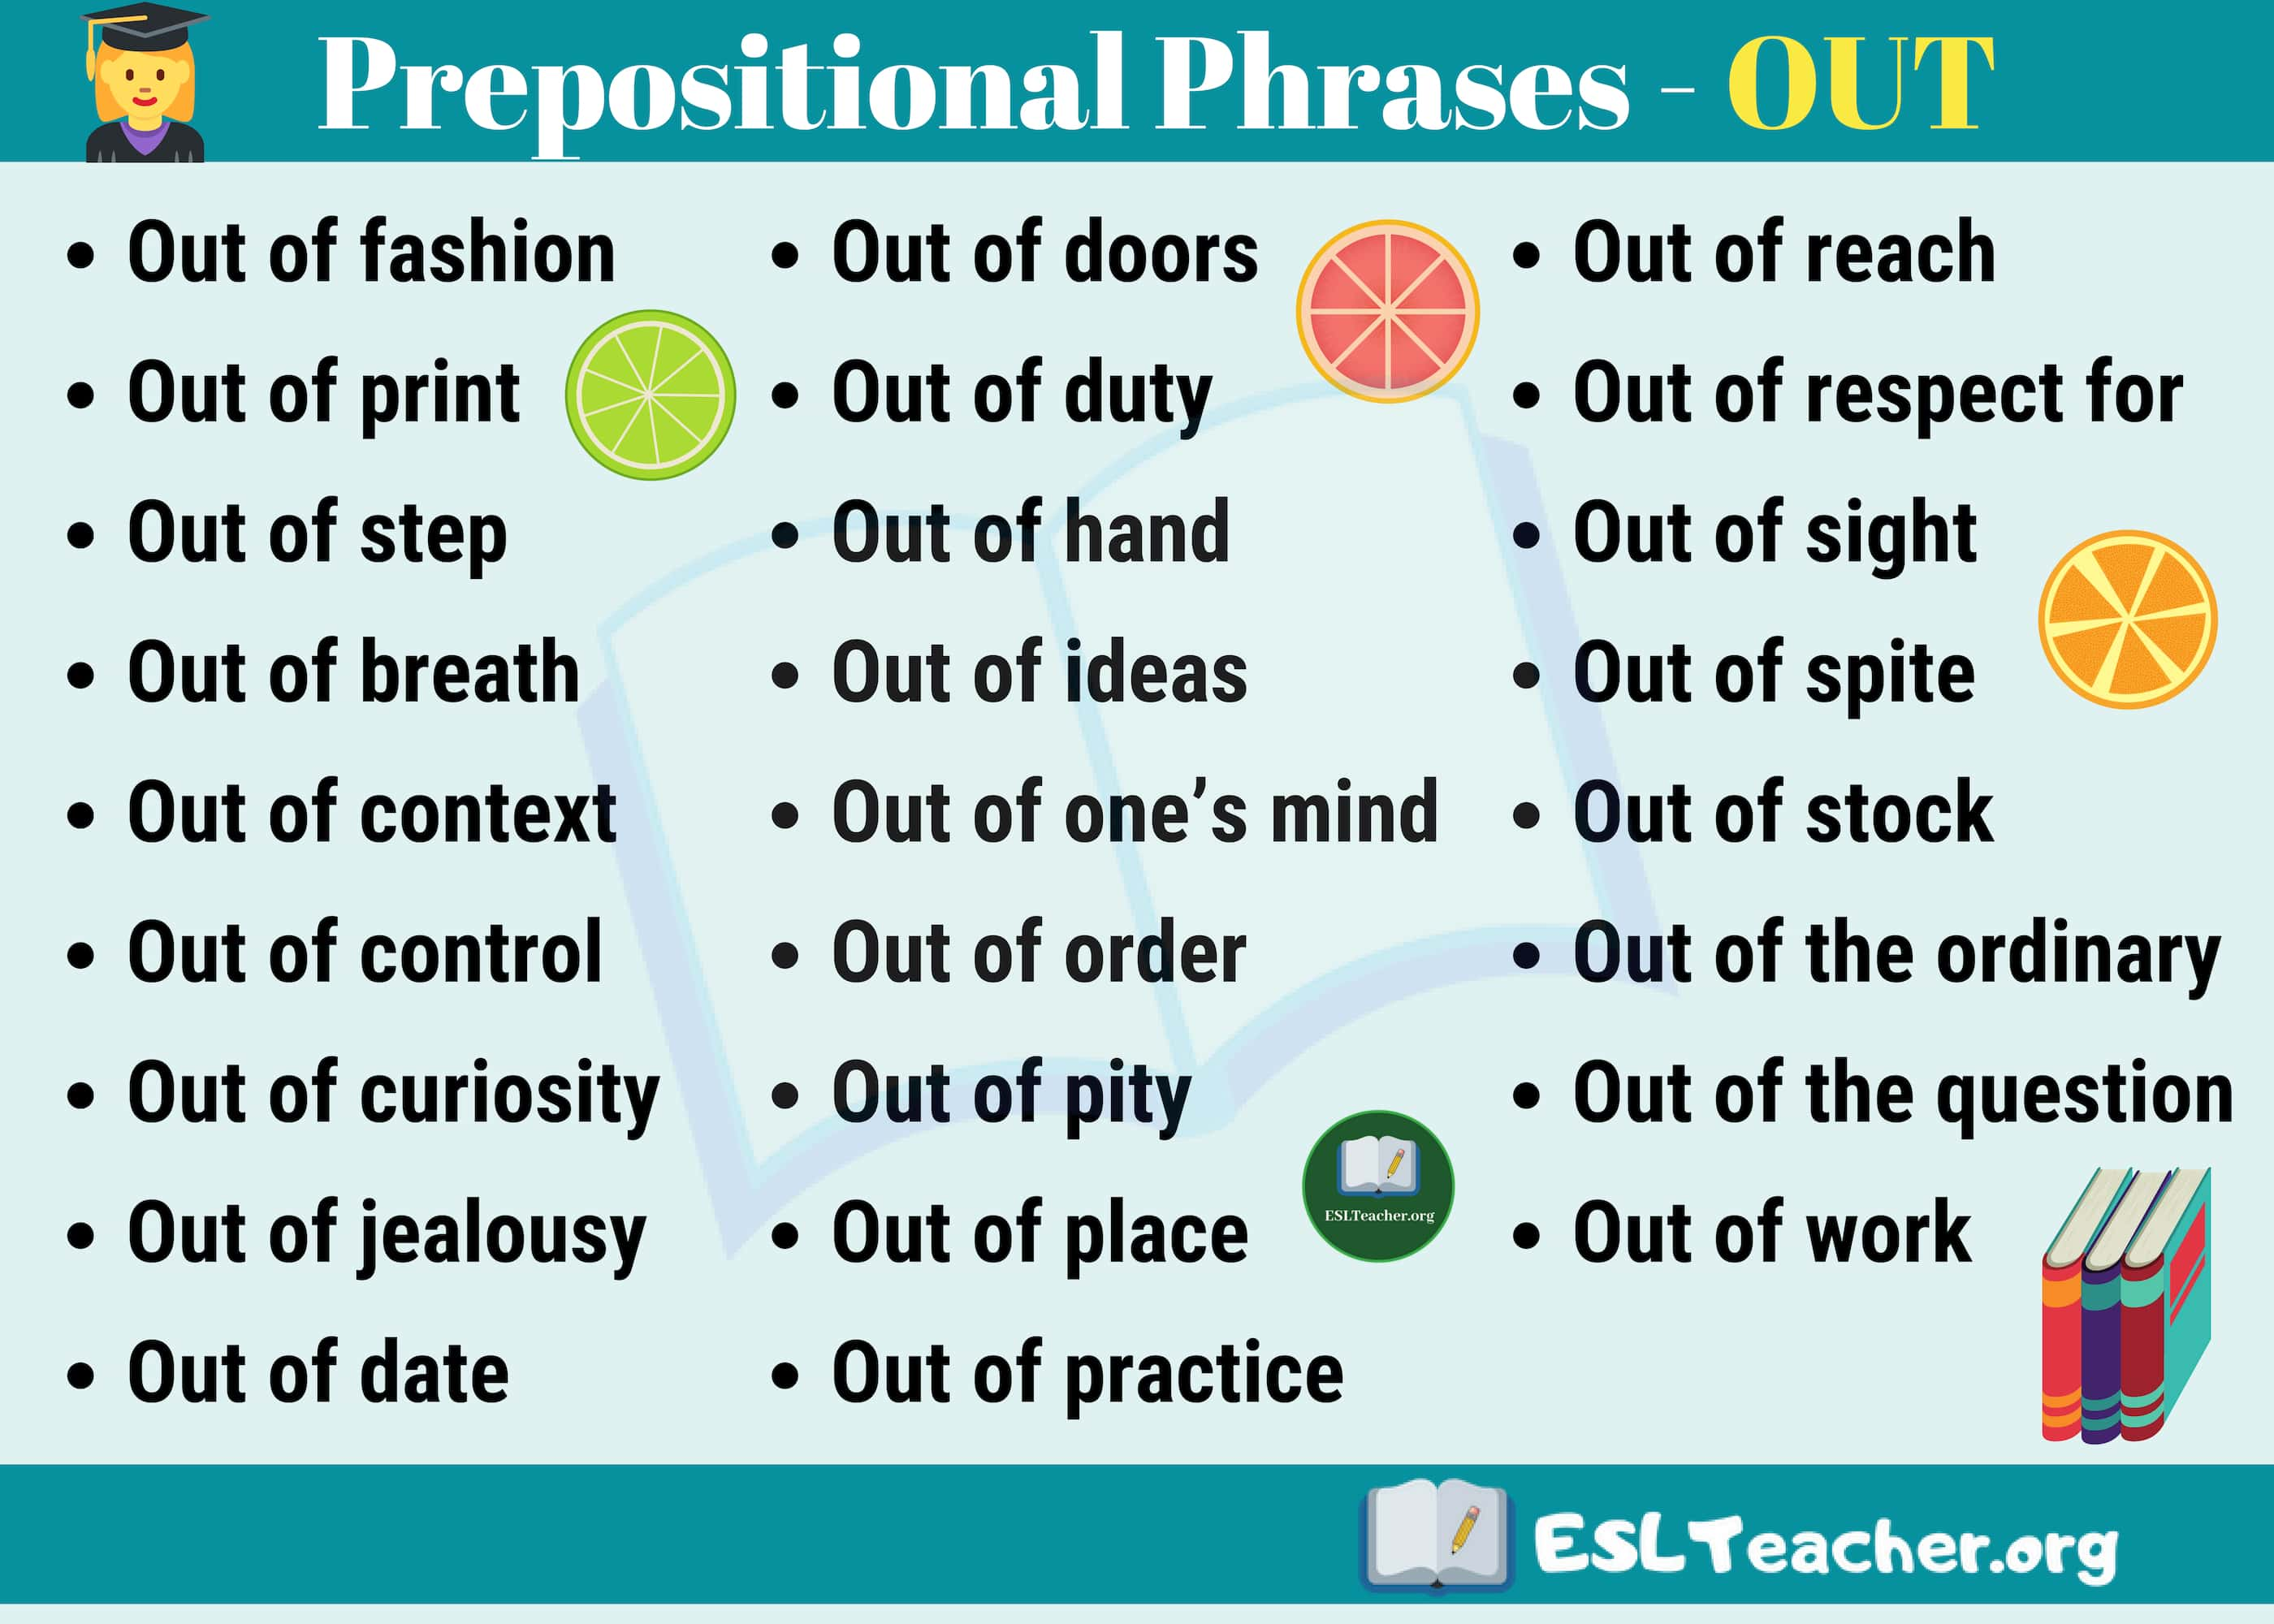 Prepositional Phrases with OUT